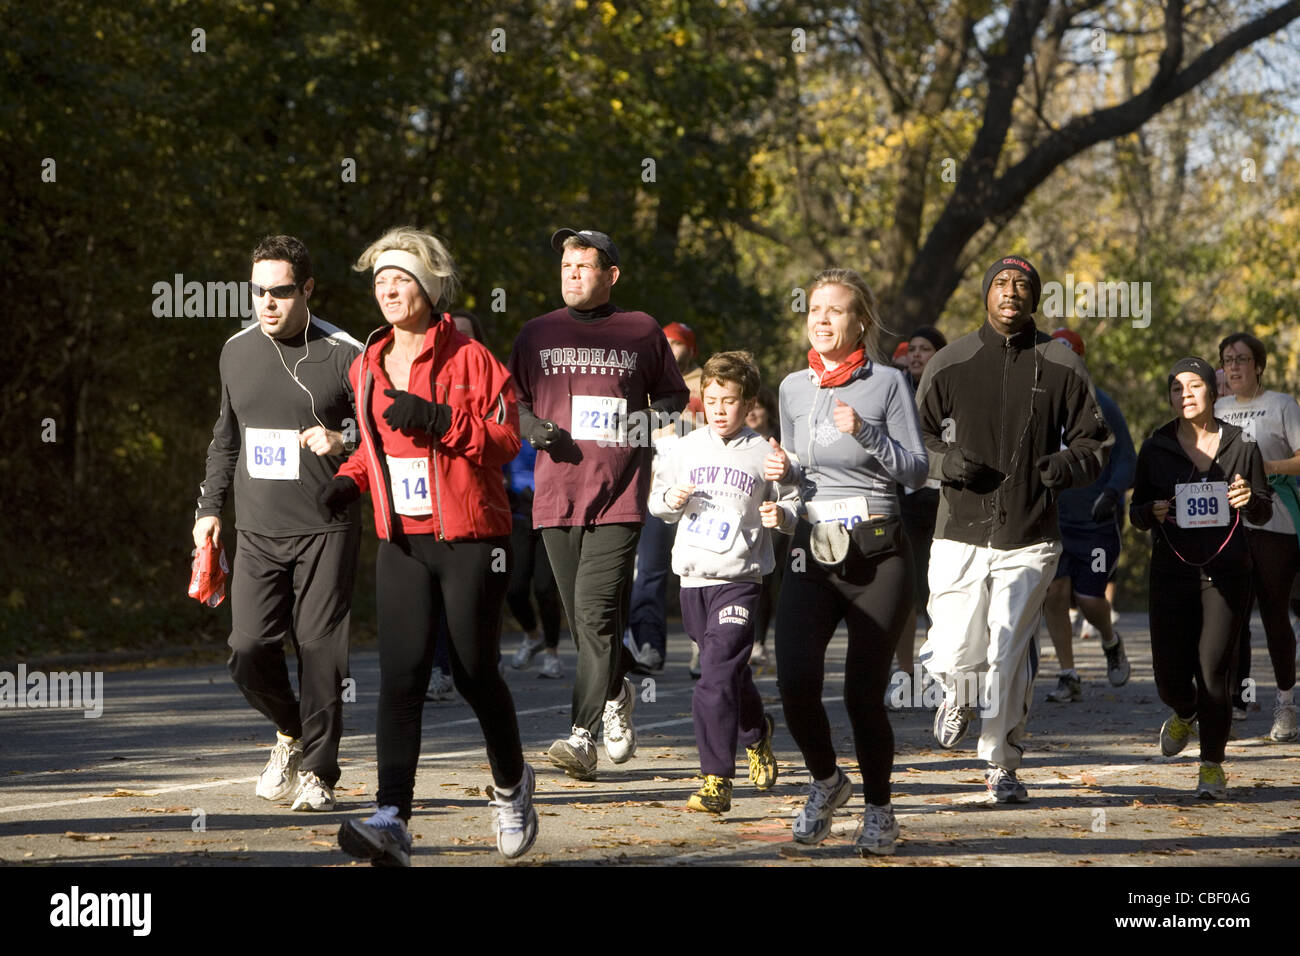 The Thanksgiving Day 'Turkey Trot' 5 mile run in Prospect Park Brooklyn attracts people of all ages, sizes, and - Stock Photo